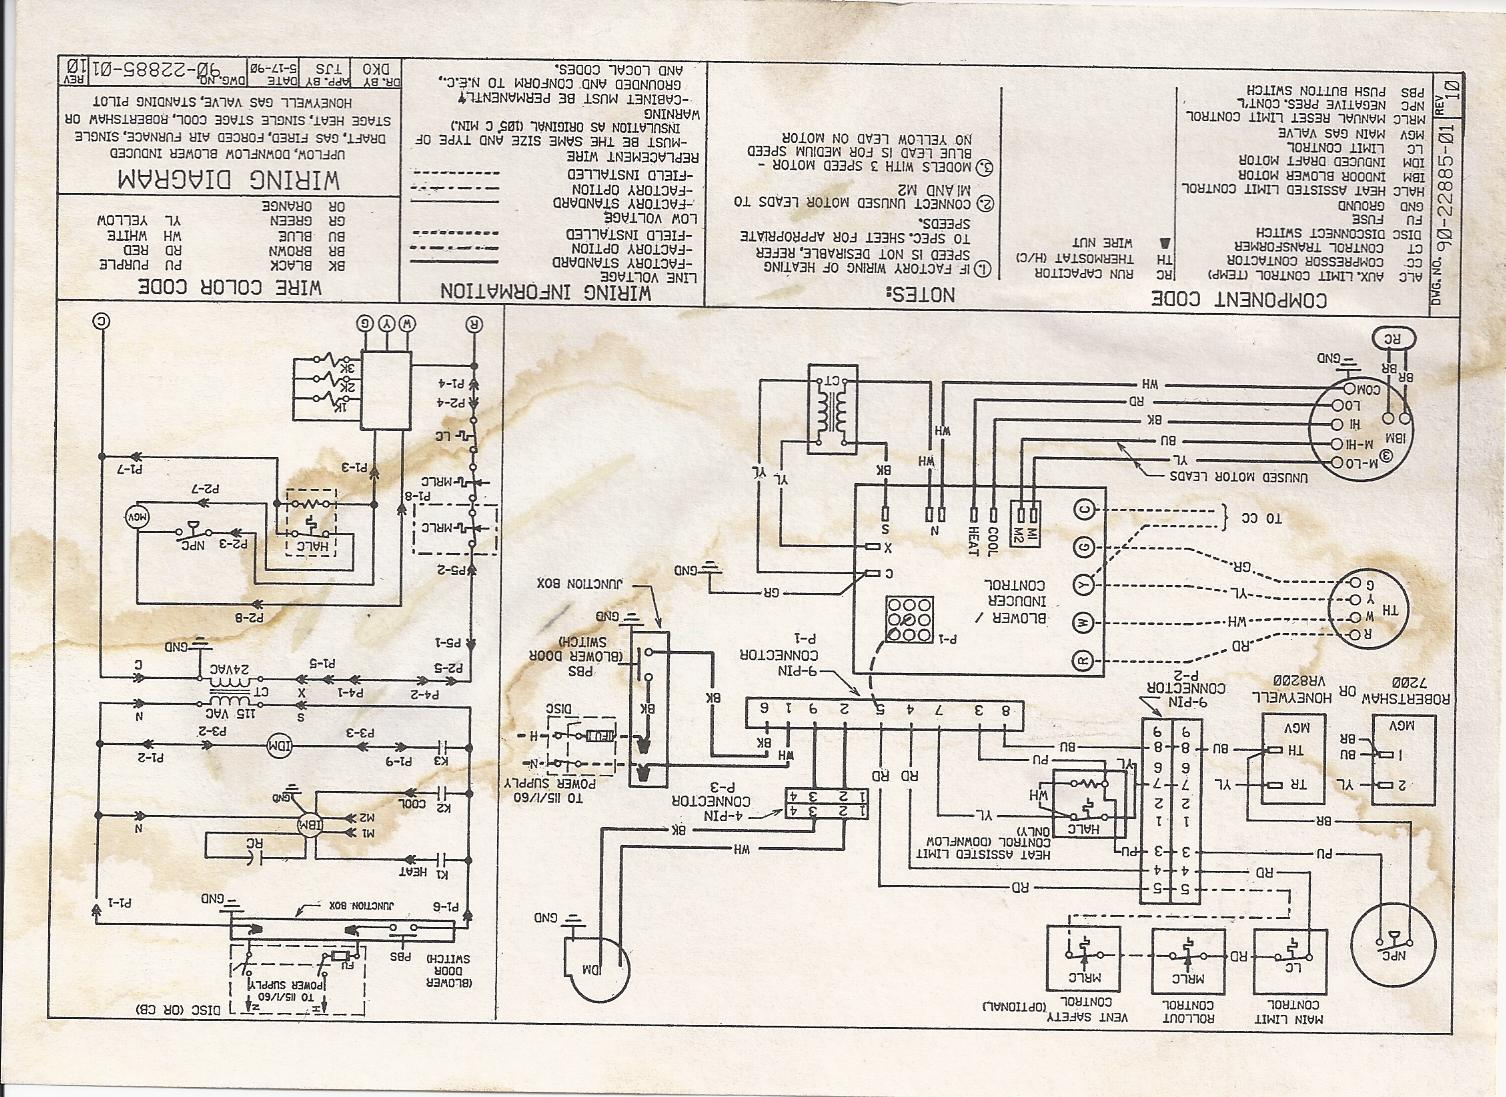 furnace wiring diagram older furnace my ruud indoor blower runs all the time, i have been told ... wiring diagram older furnace heater relay